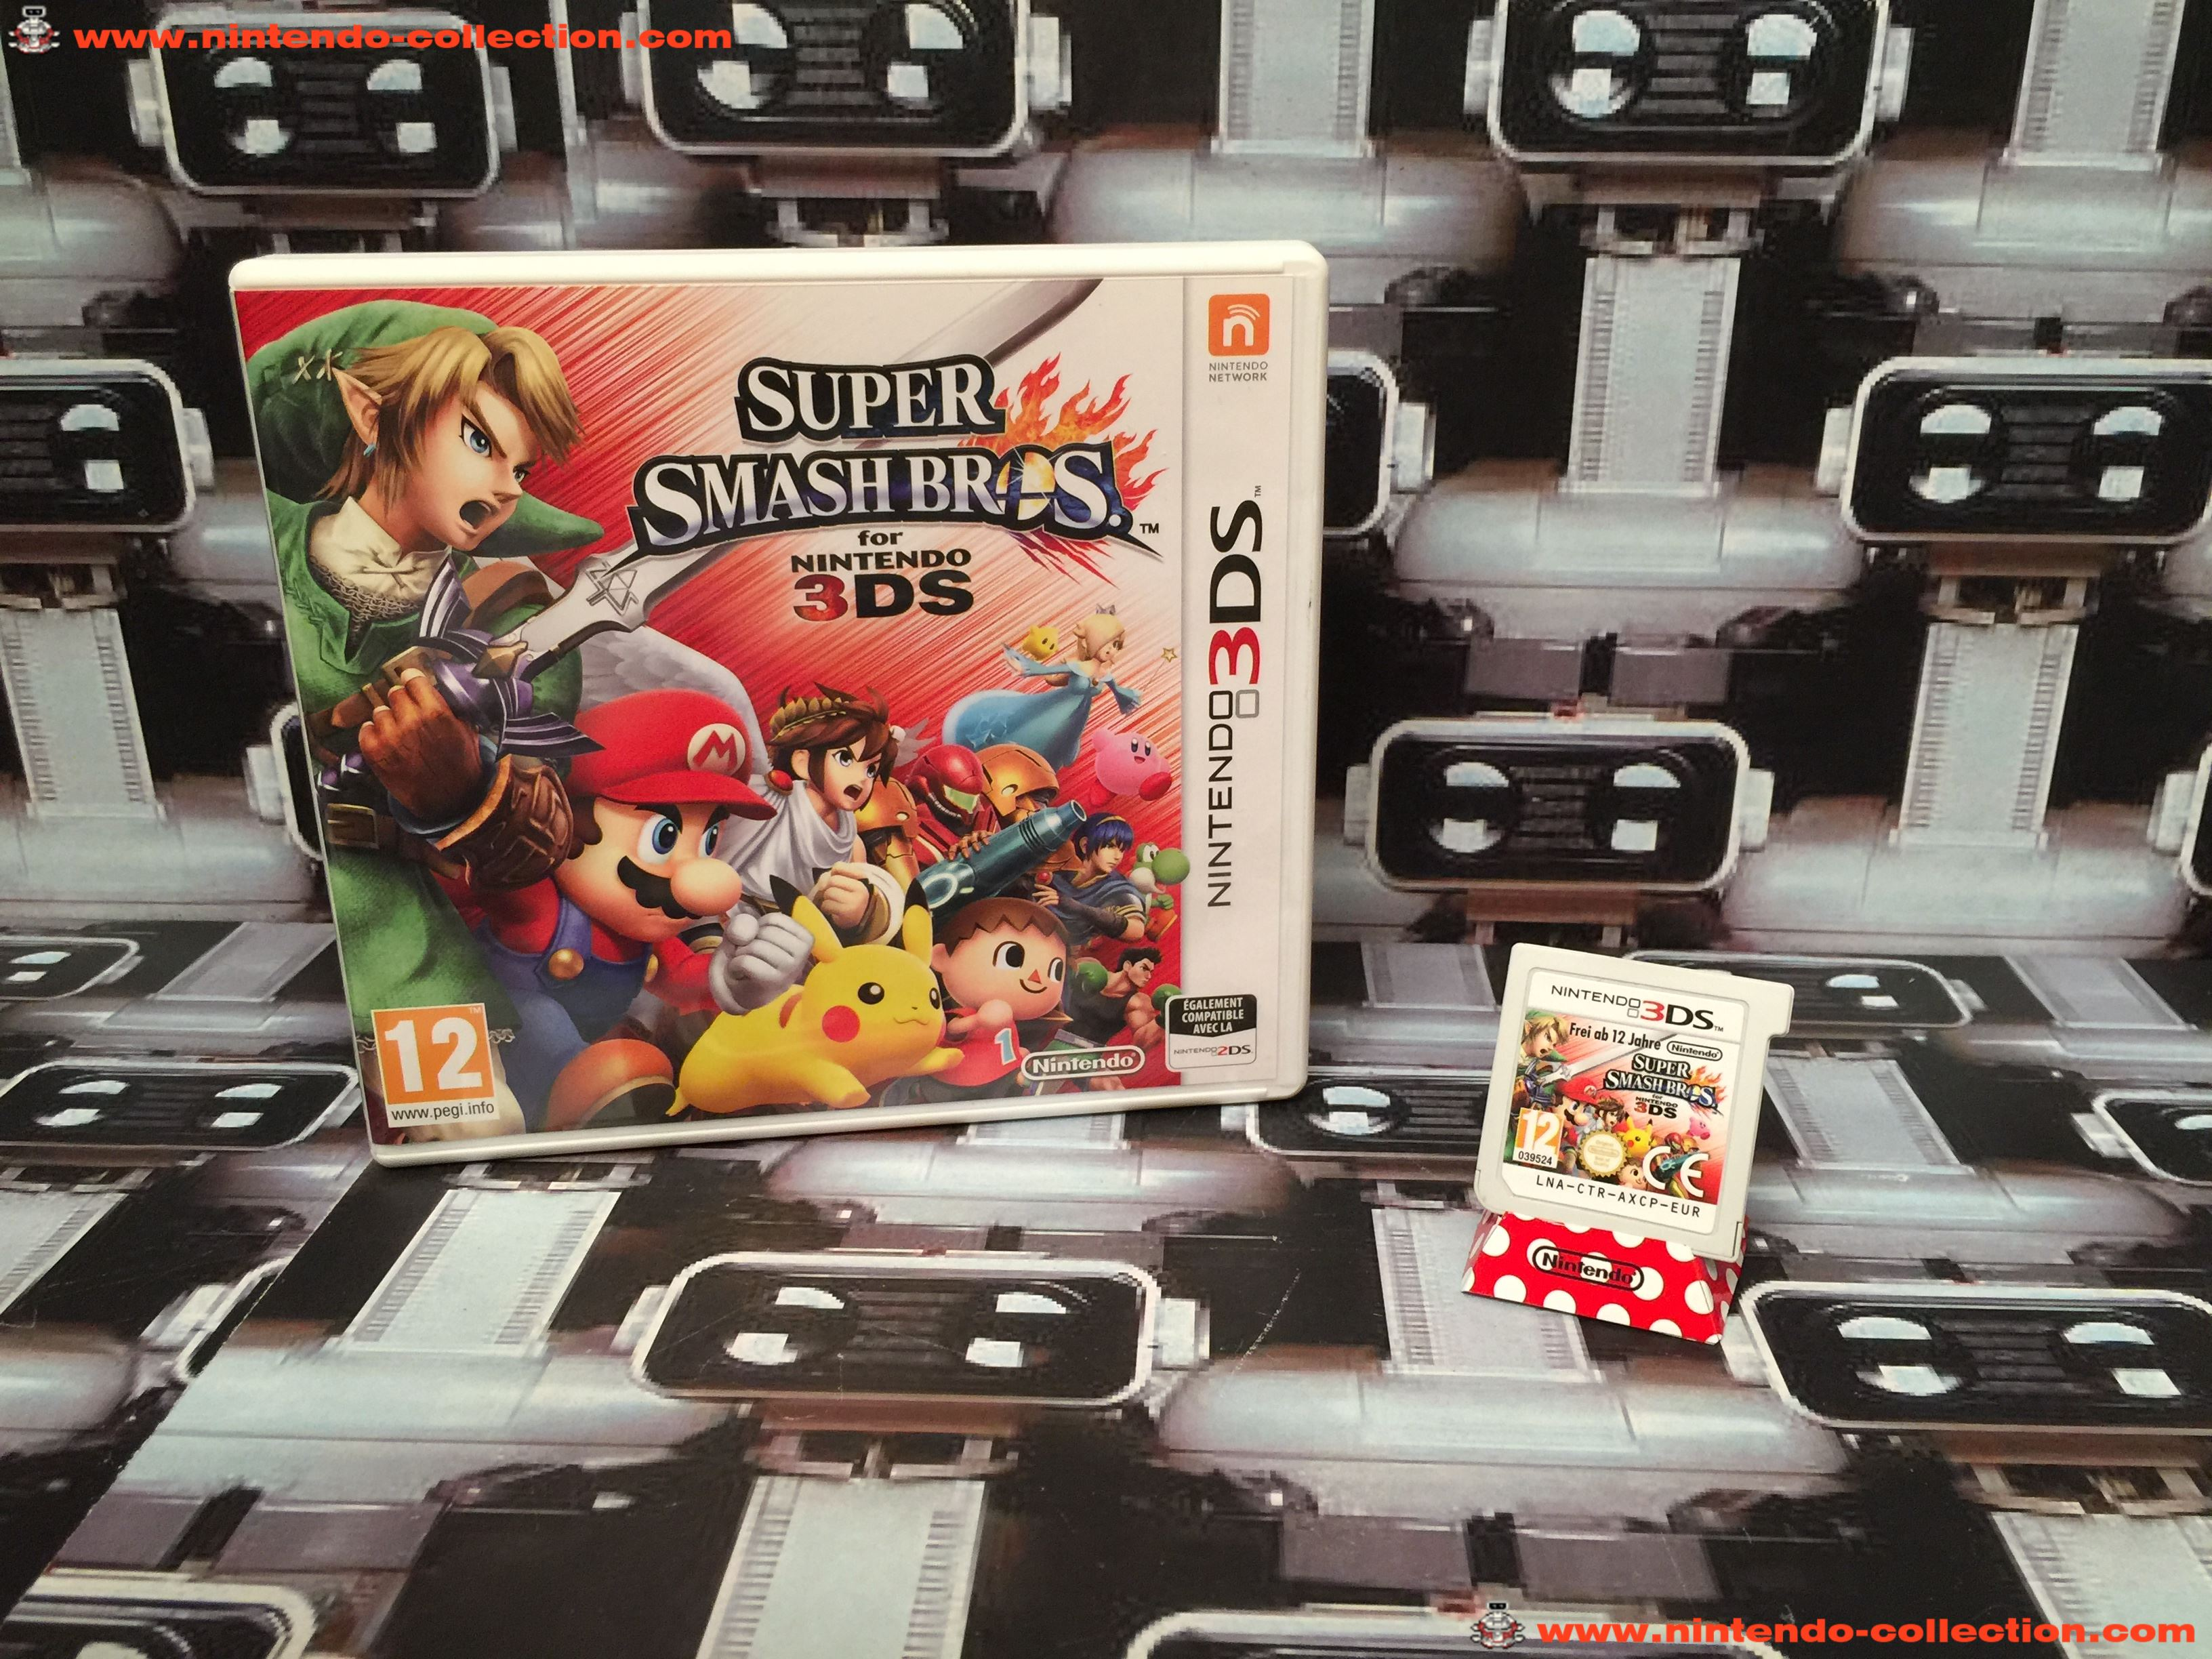 www.nintendo-collection.com - Nintendo 3DS Jeux Game Super Smash Bros